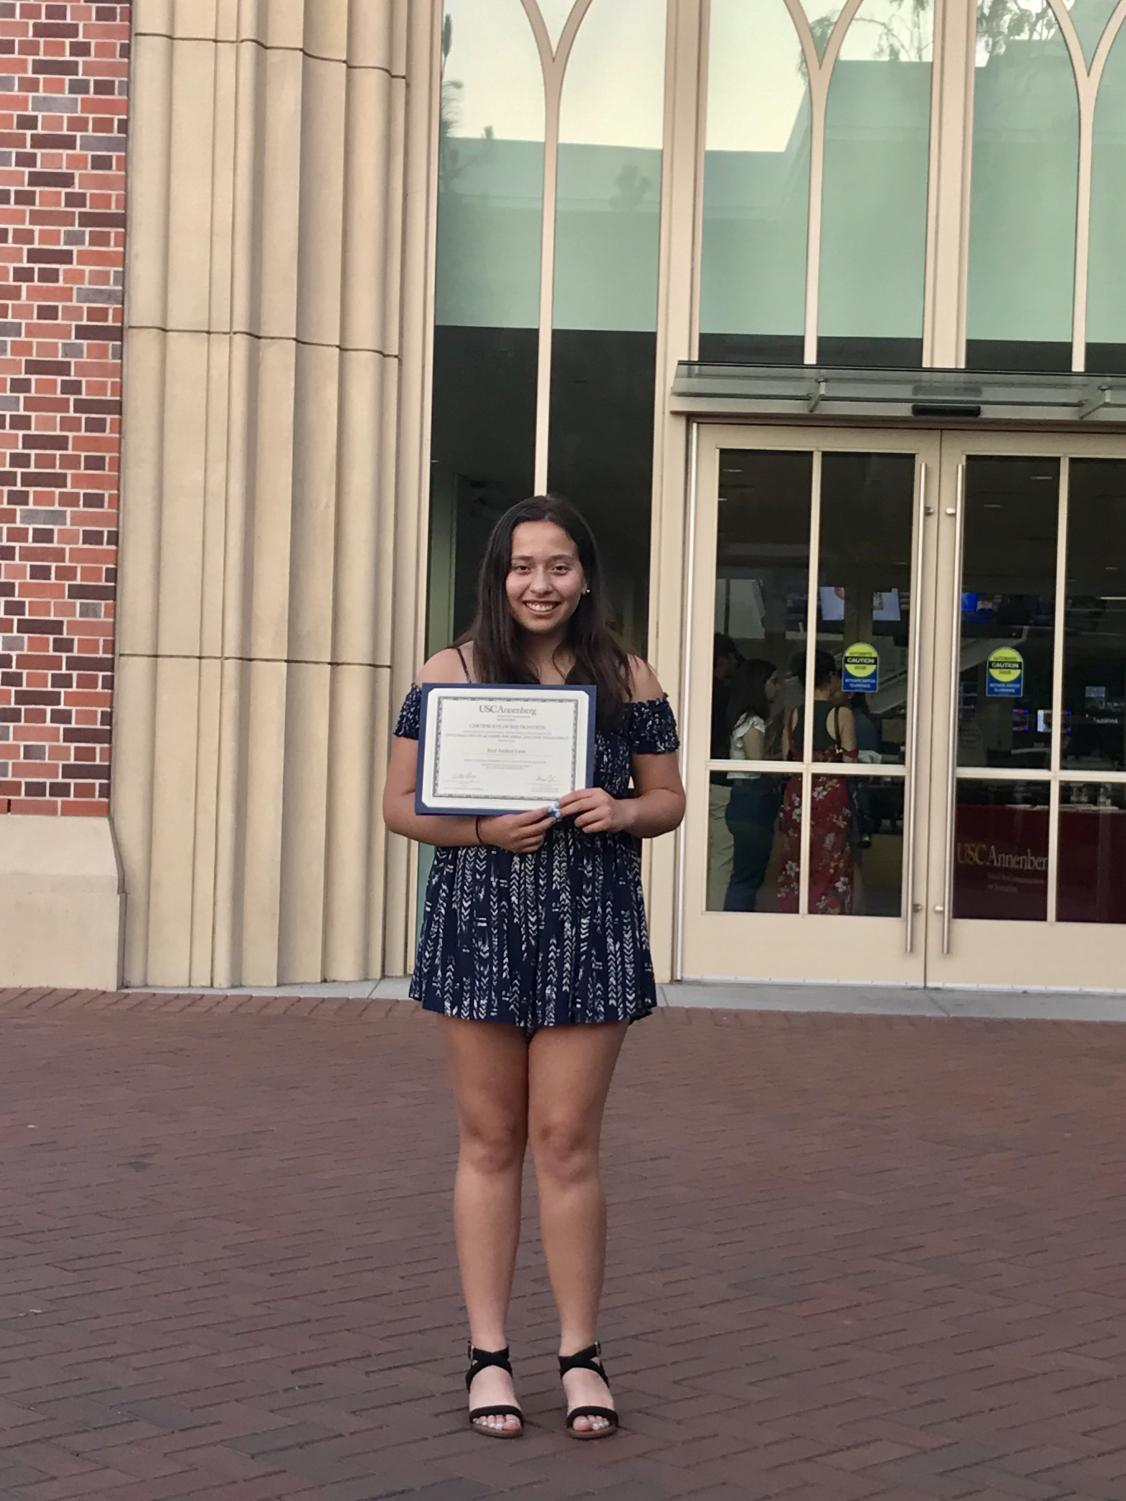 The+Pearl+Post+Managing+Editor+Itzel+Luna+holds+her+completion+certificate++outside+of+the+University+of+Southern+California+Annenberg+building+during+graduation+of+the+Annenberg+Youth+Academy+on+July+12.+